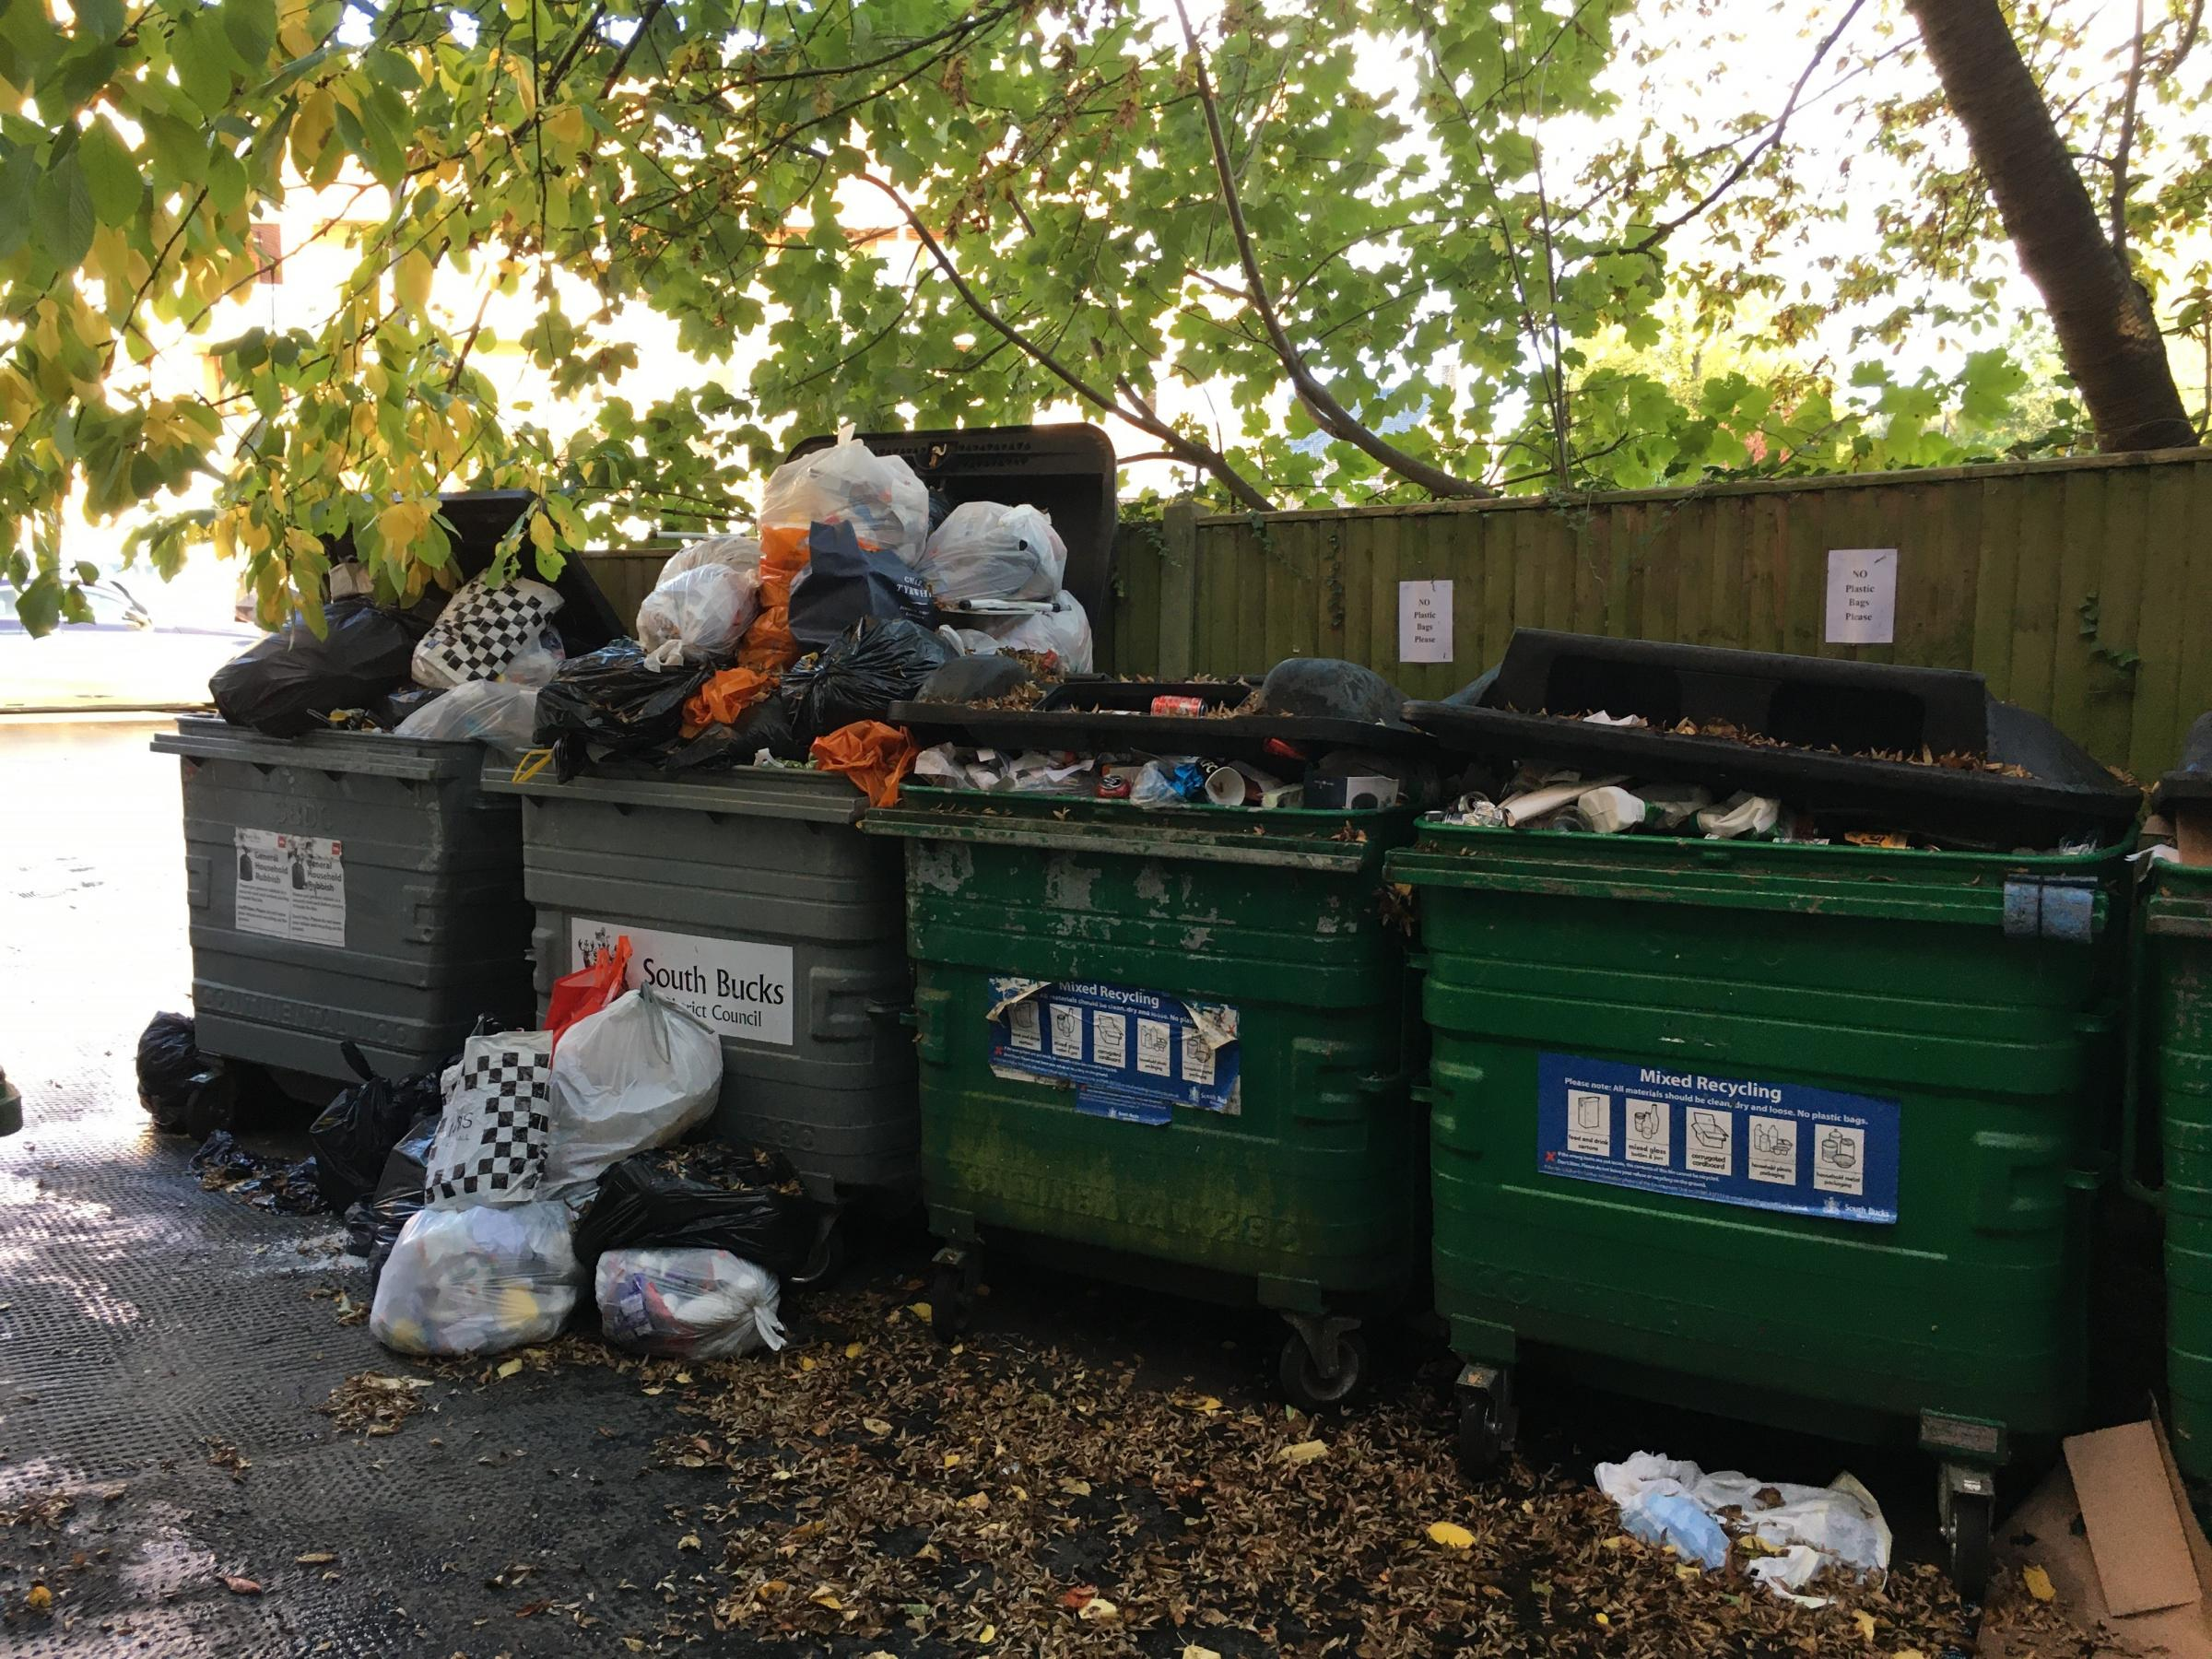 Beaconsfield resident hits out at overflowing waste in communal bins - Bucks Free Press